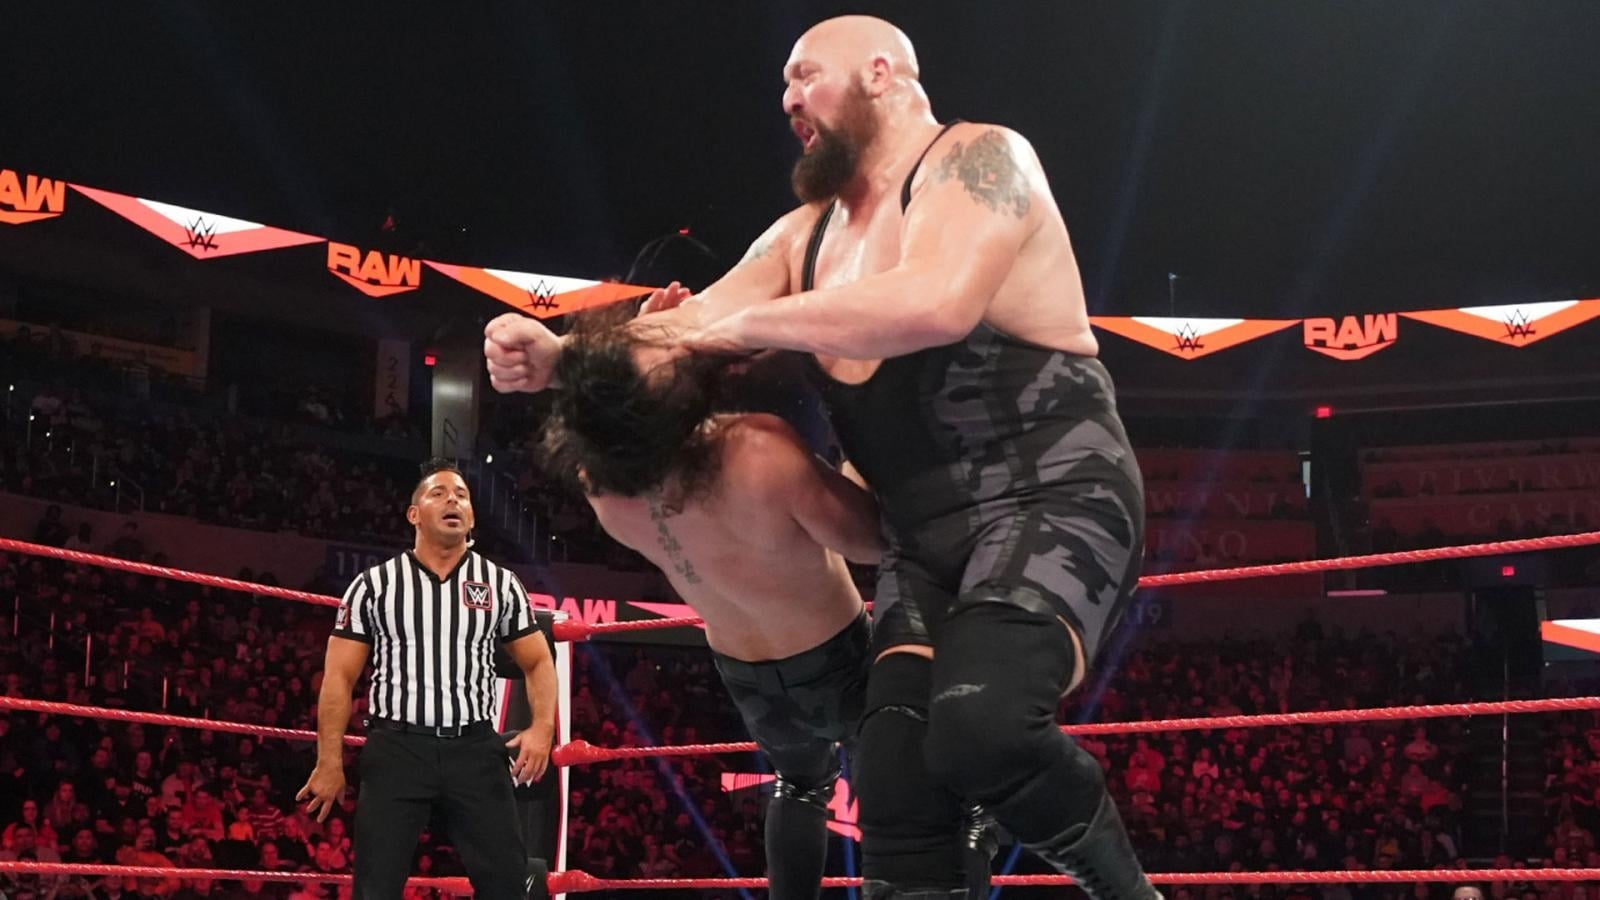 WWE Raw Season 28 :Episode 1  January 6, 2020 (Oklahoma City, OK)